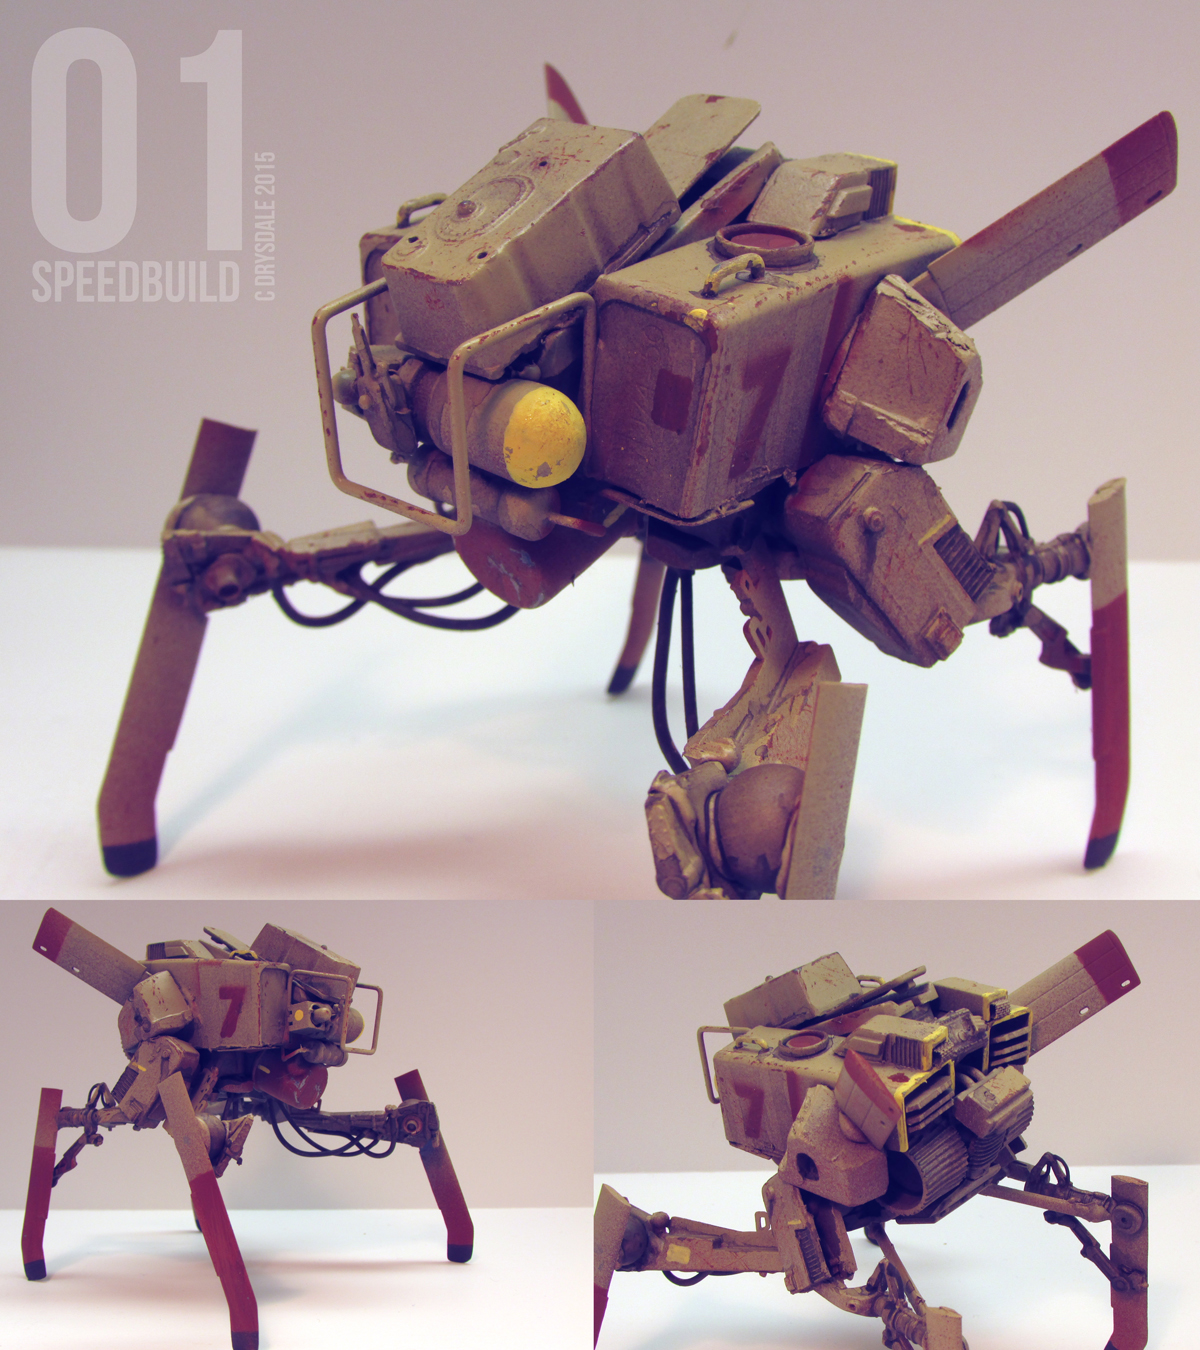 Mech Speedbuild 01 by Spex84